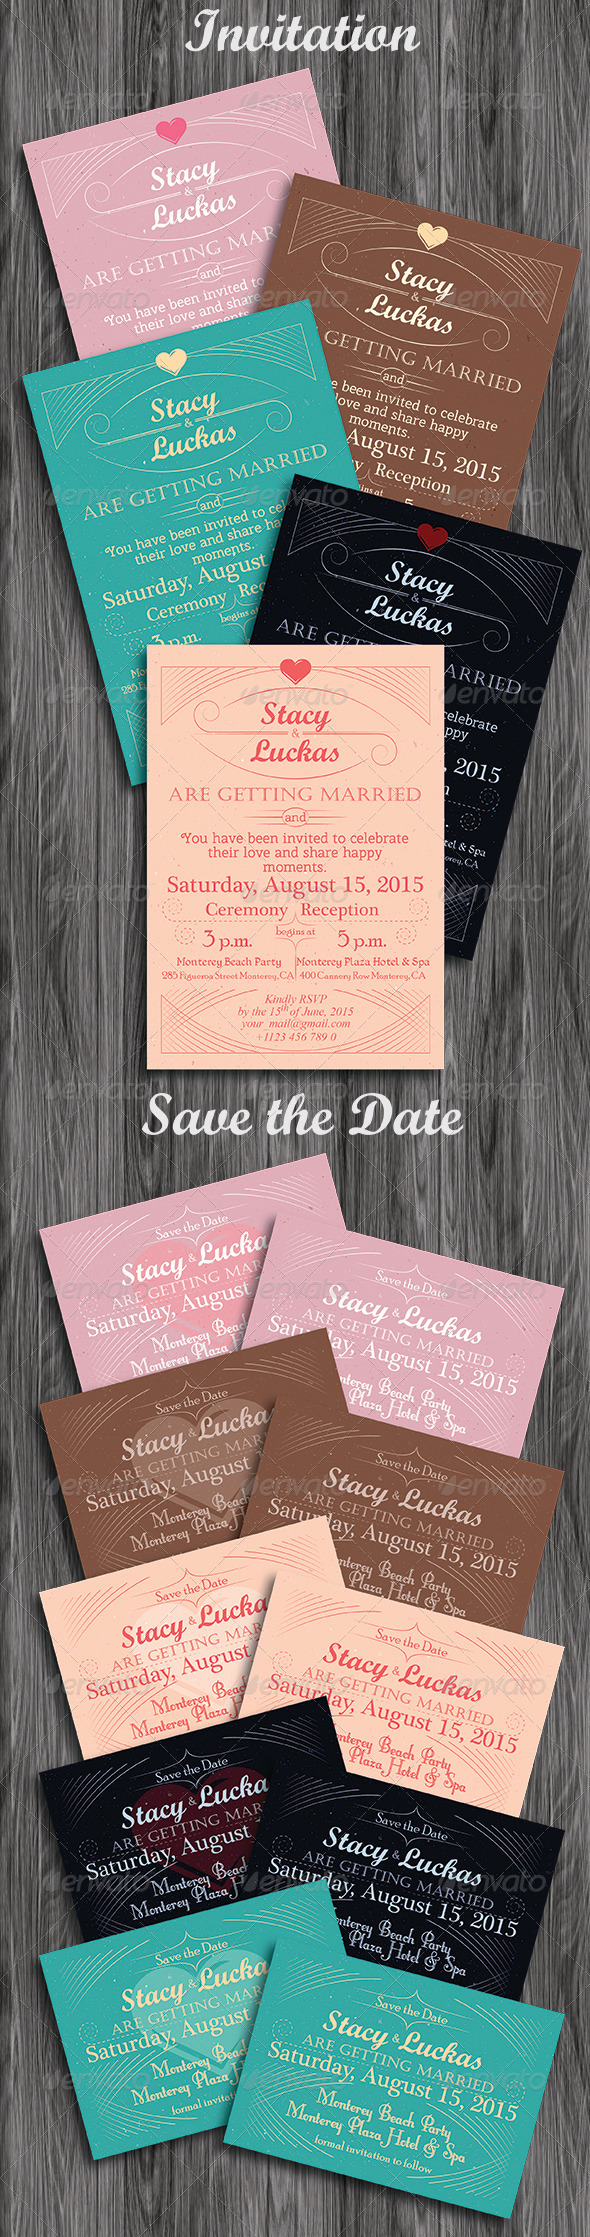 Invitation and Save the Date Cards